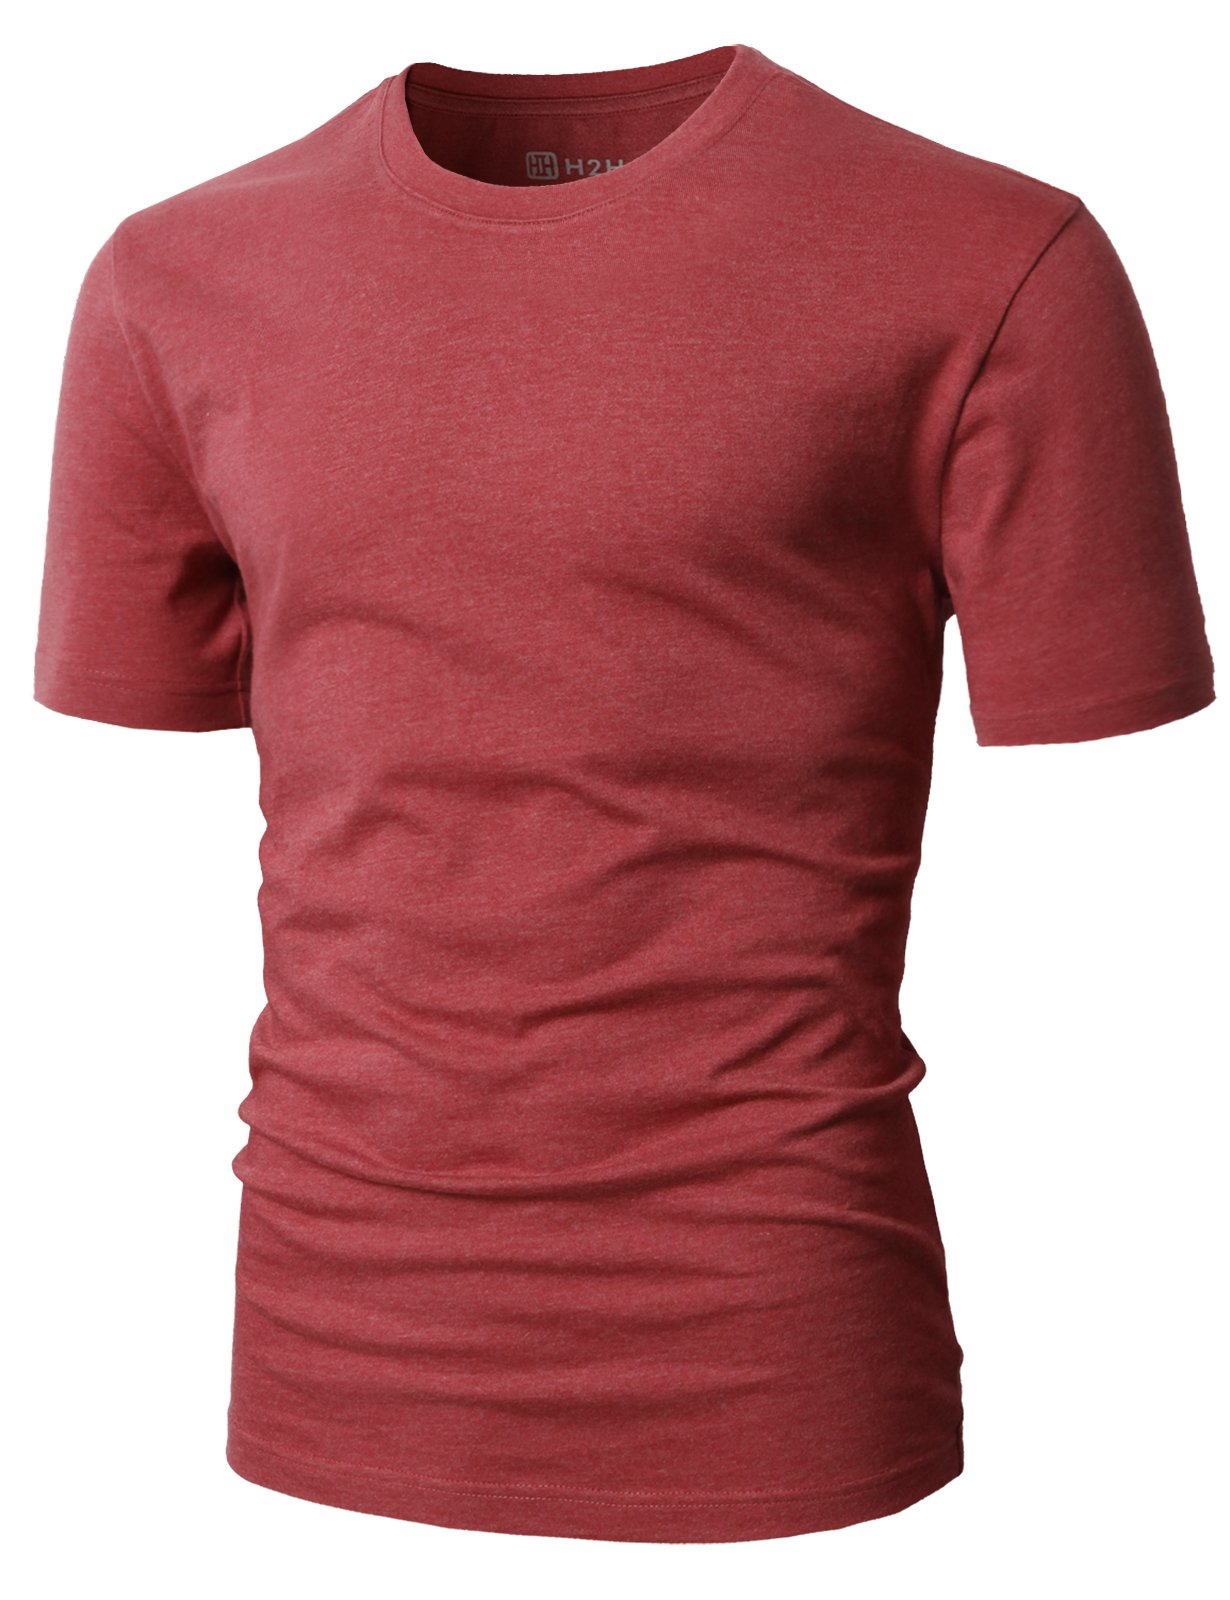 H2H Mens Business & Daily Item Fine Soft Cotton Crew Neck T-Shirt Maroon US S/Asia M (CMTTS0198) by H2H (Image #1)